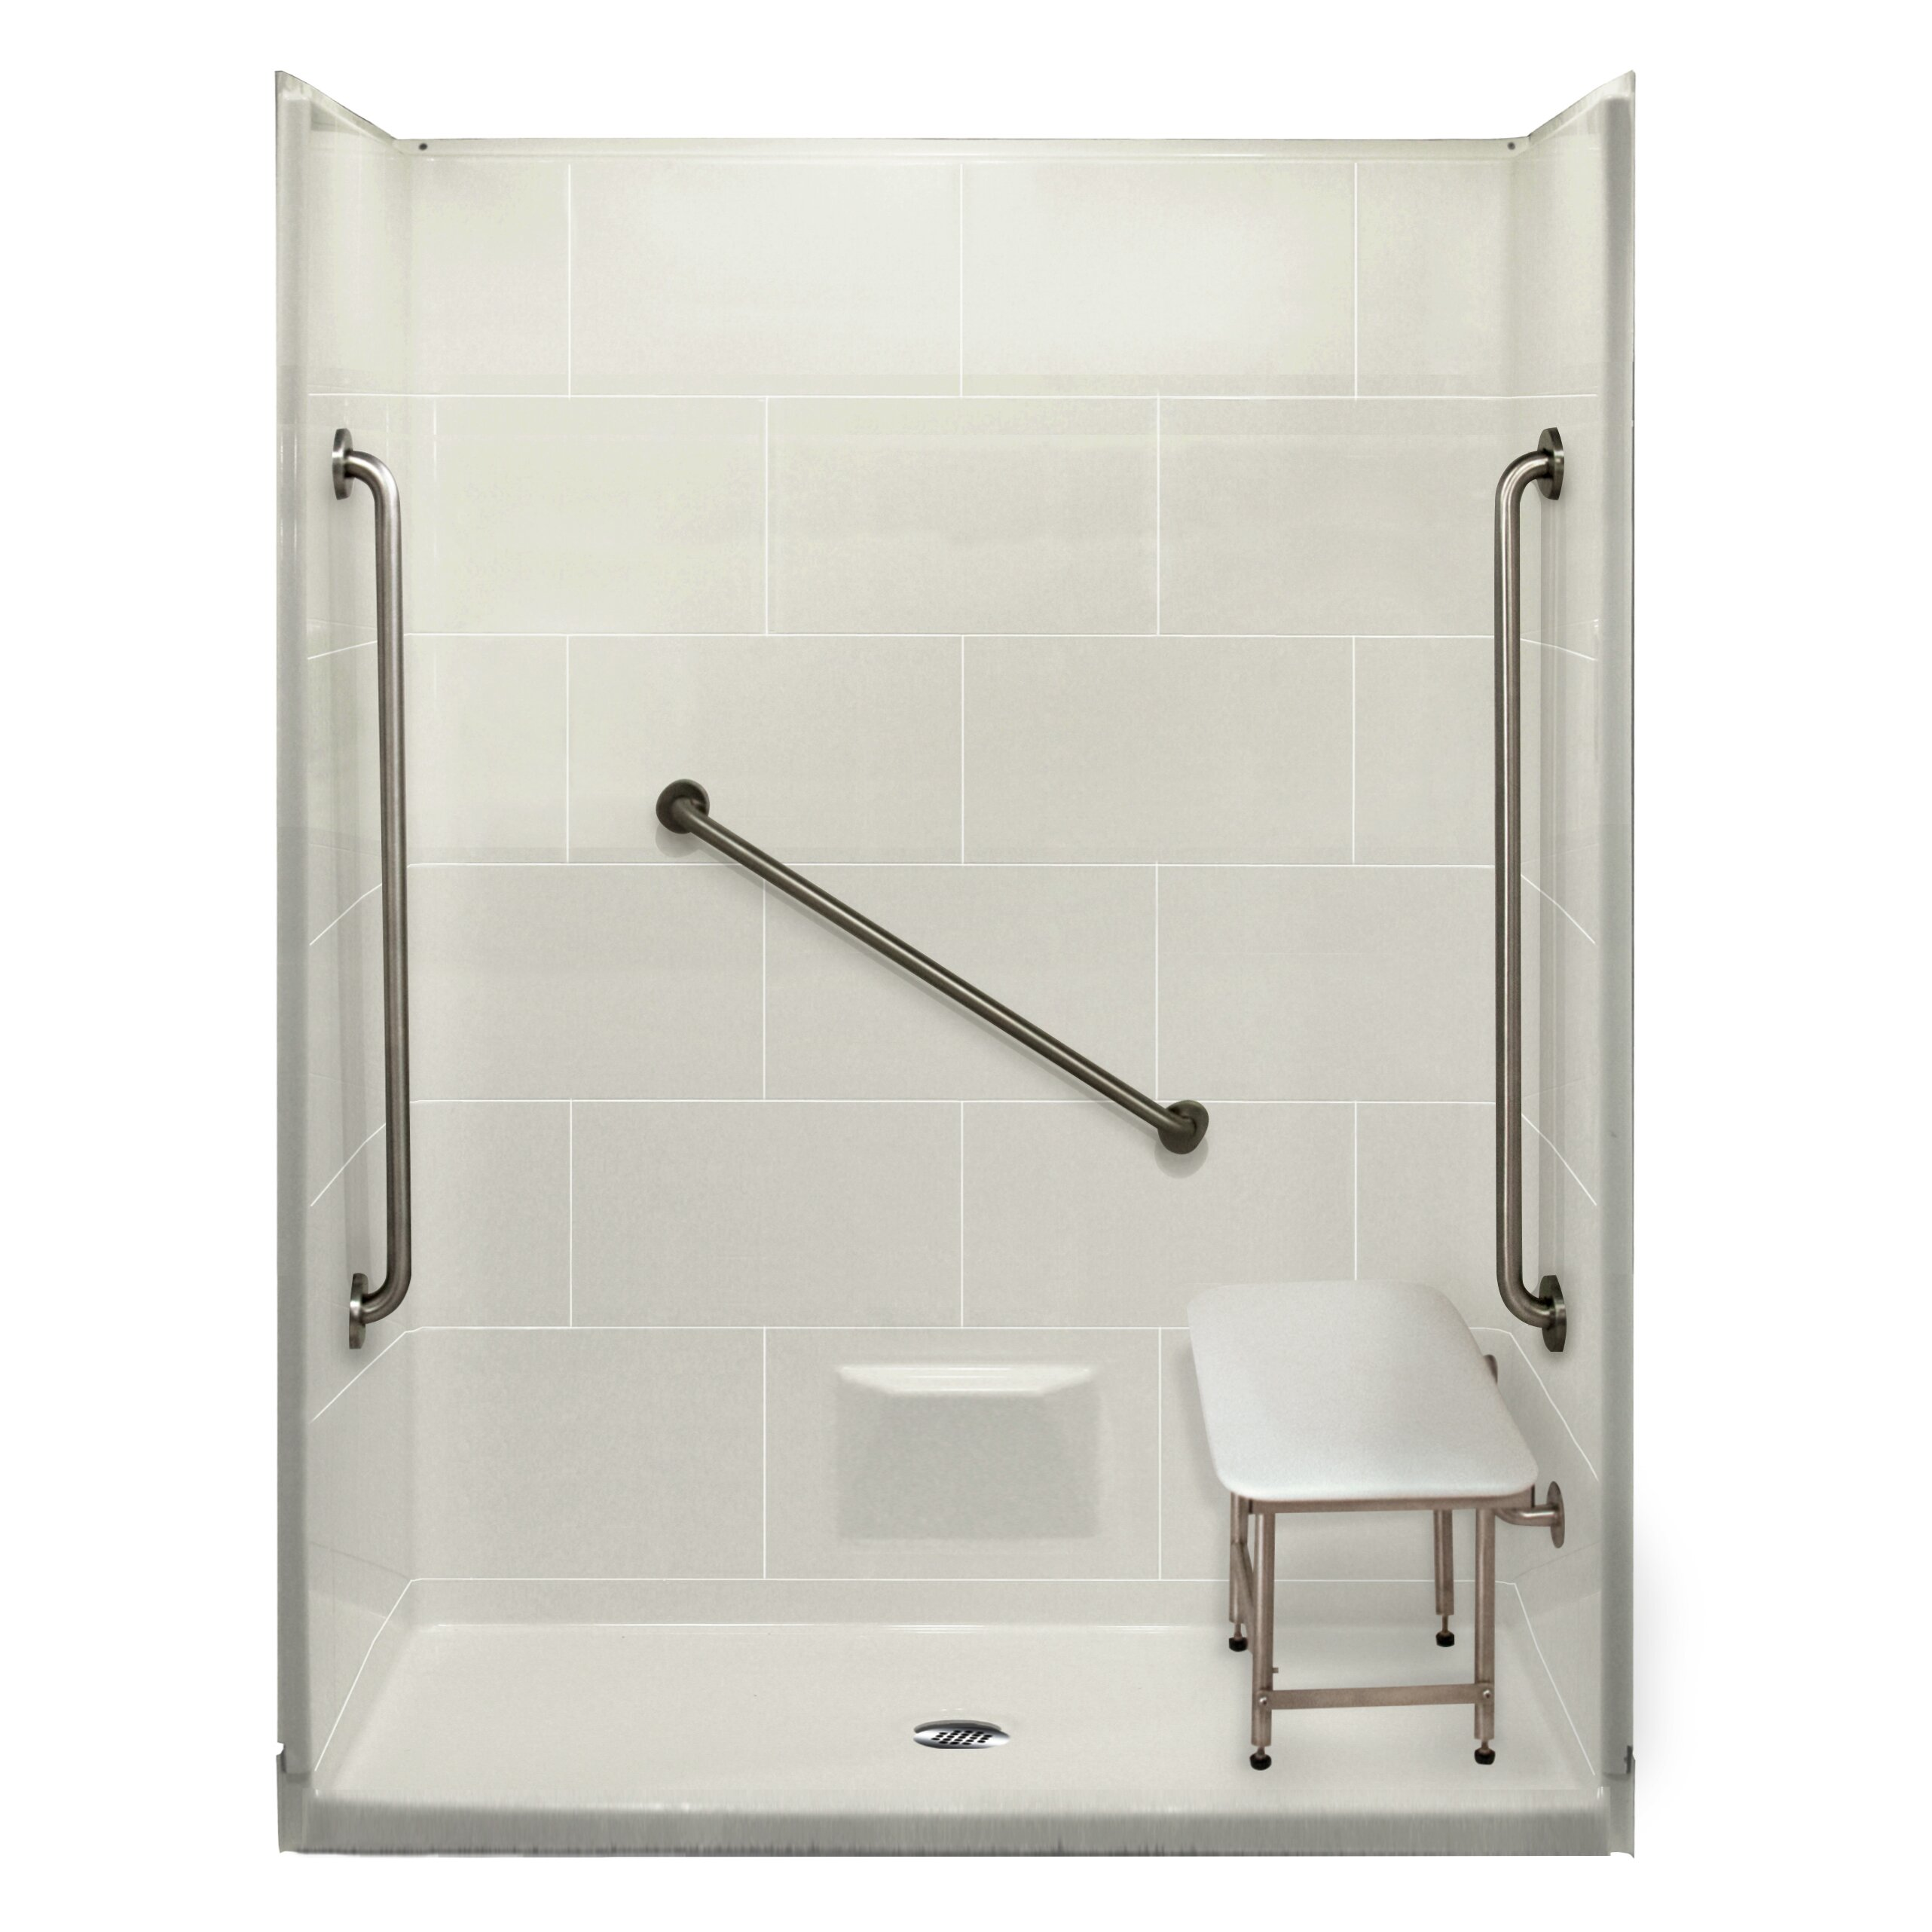 Ella walk in bath plus 36 5 piece rectangular shower kit wayfair - Walk in shower base kit ...